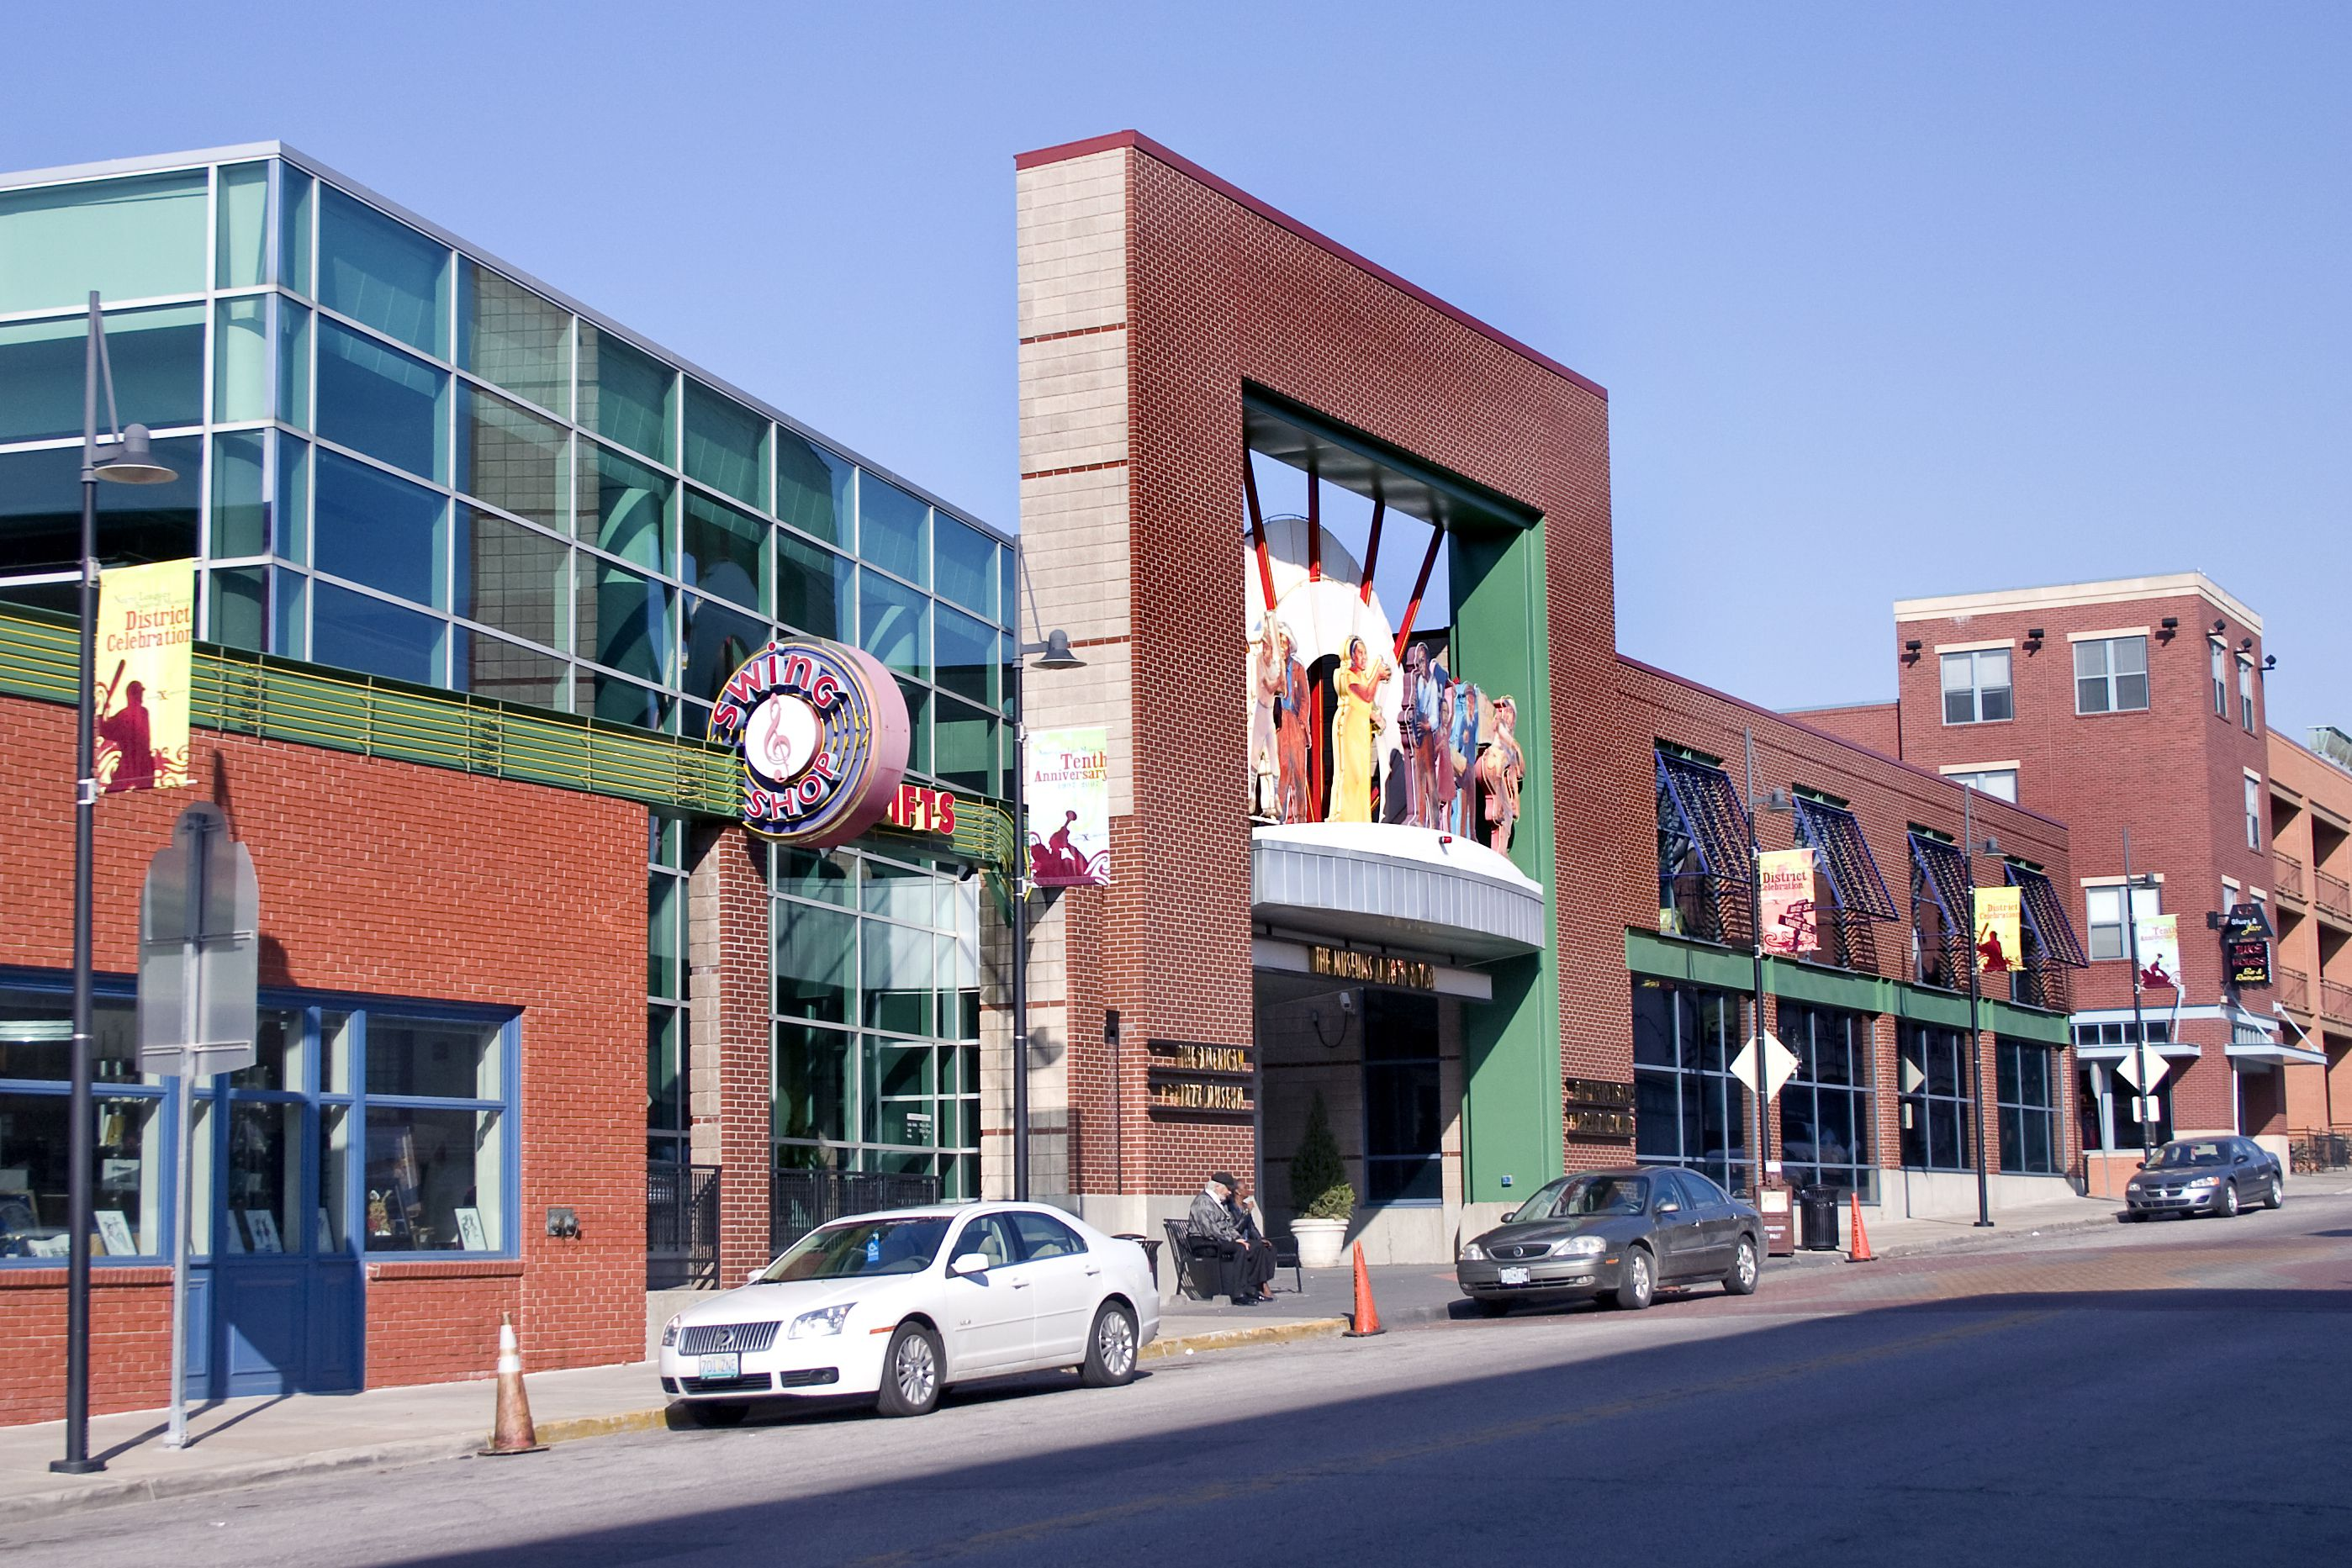 The American Jazz Museum and the Negro League Baseball Museum